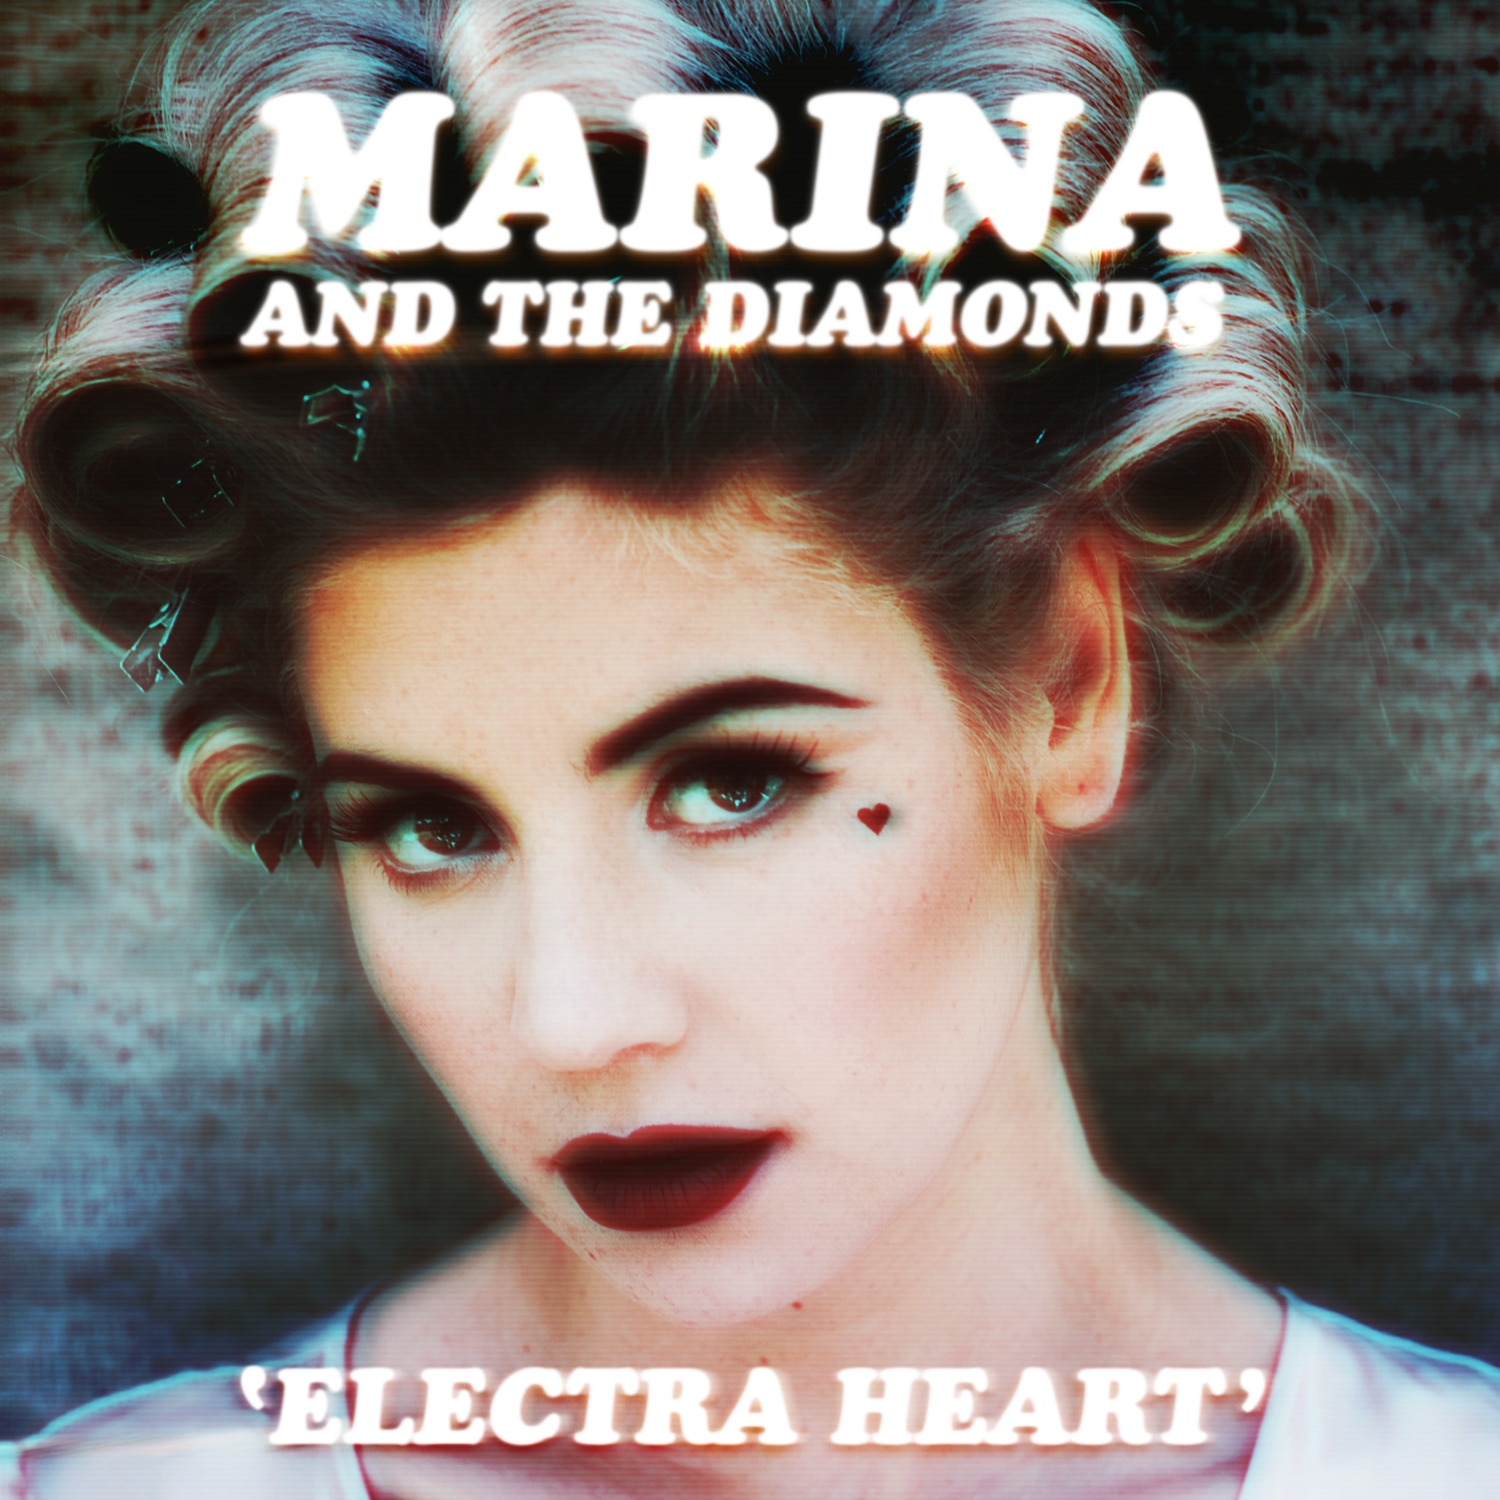 Marina and the Diamonds will join Coldplay tour, release new album